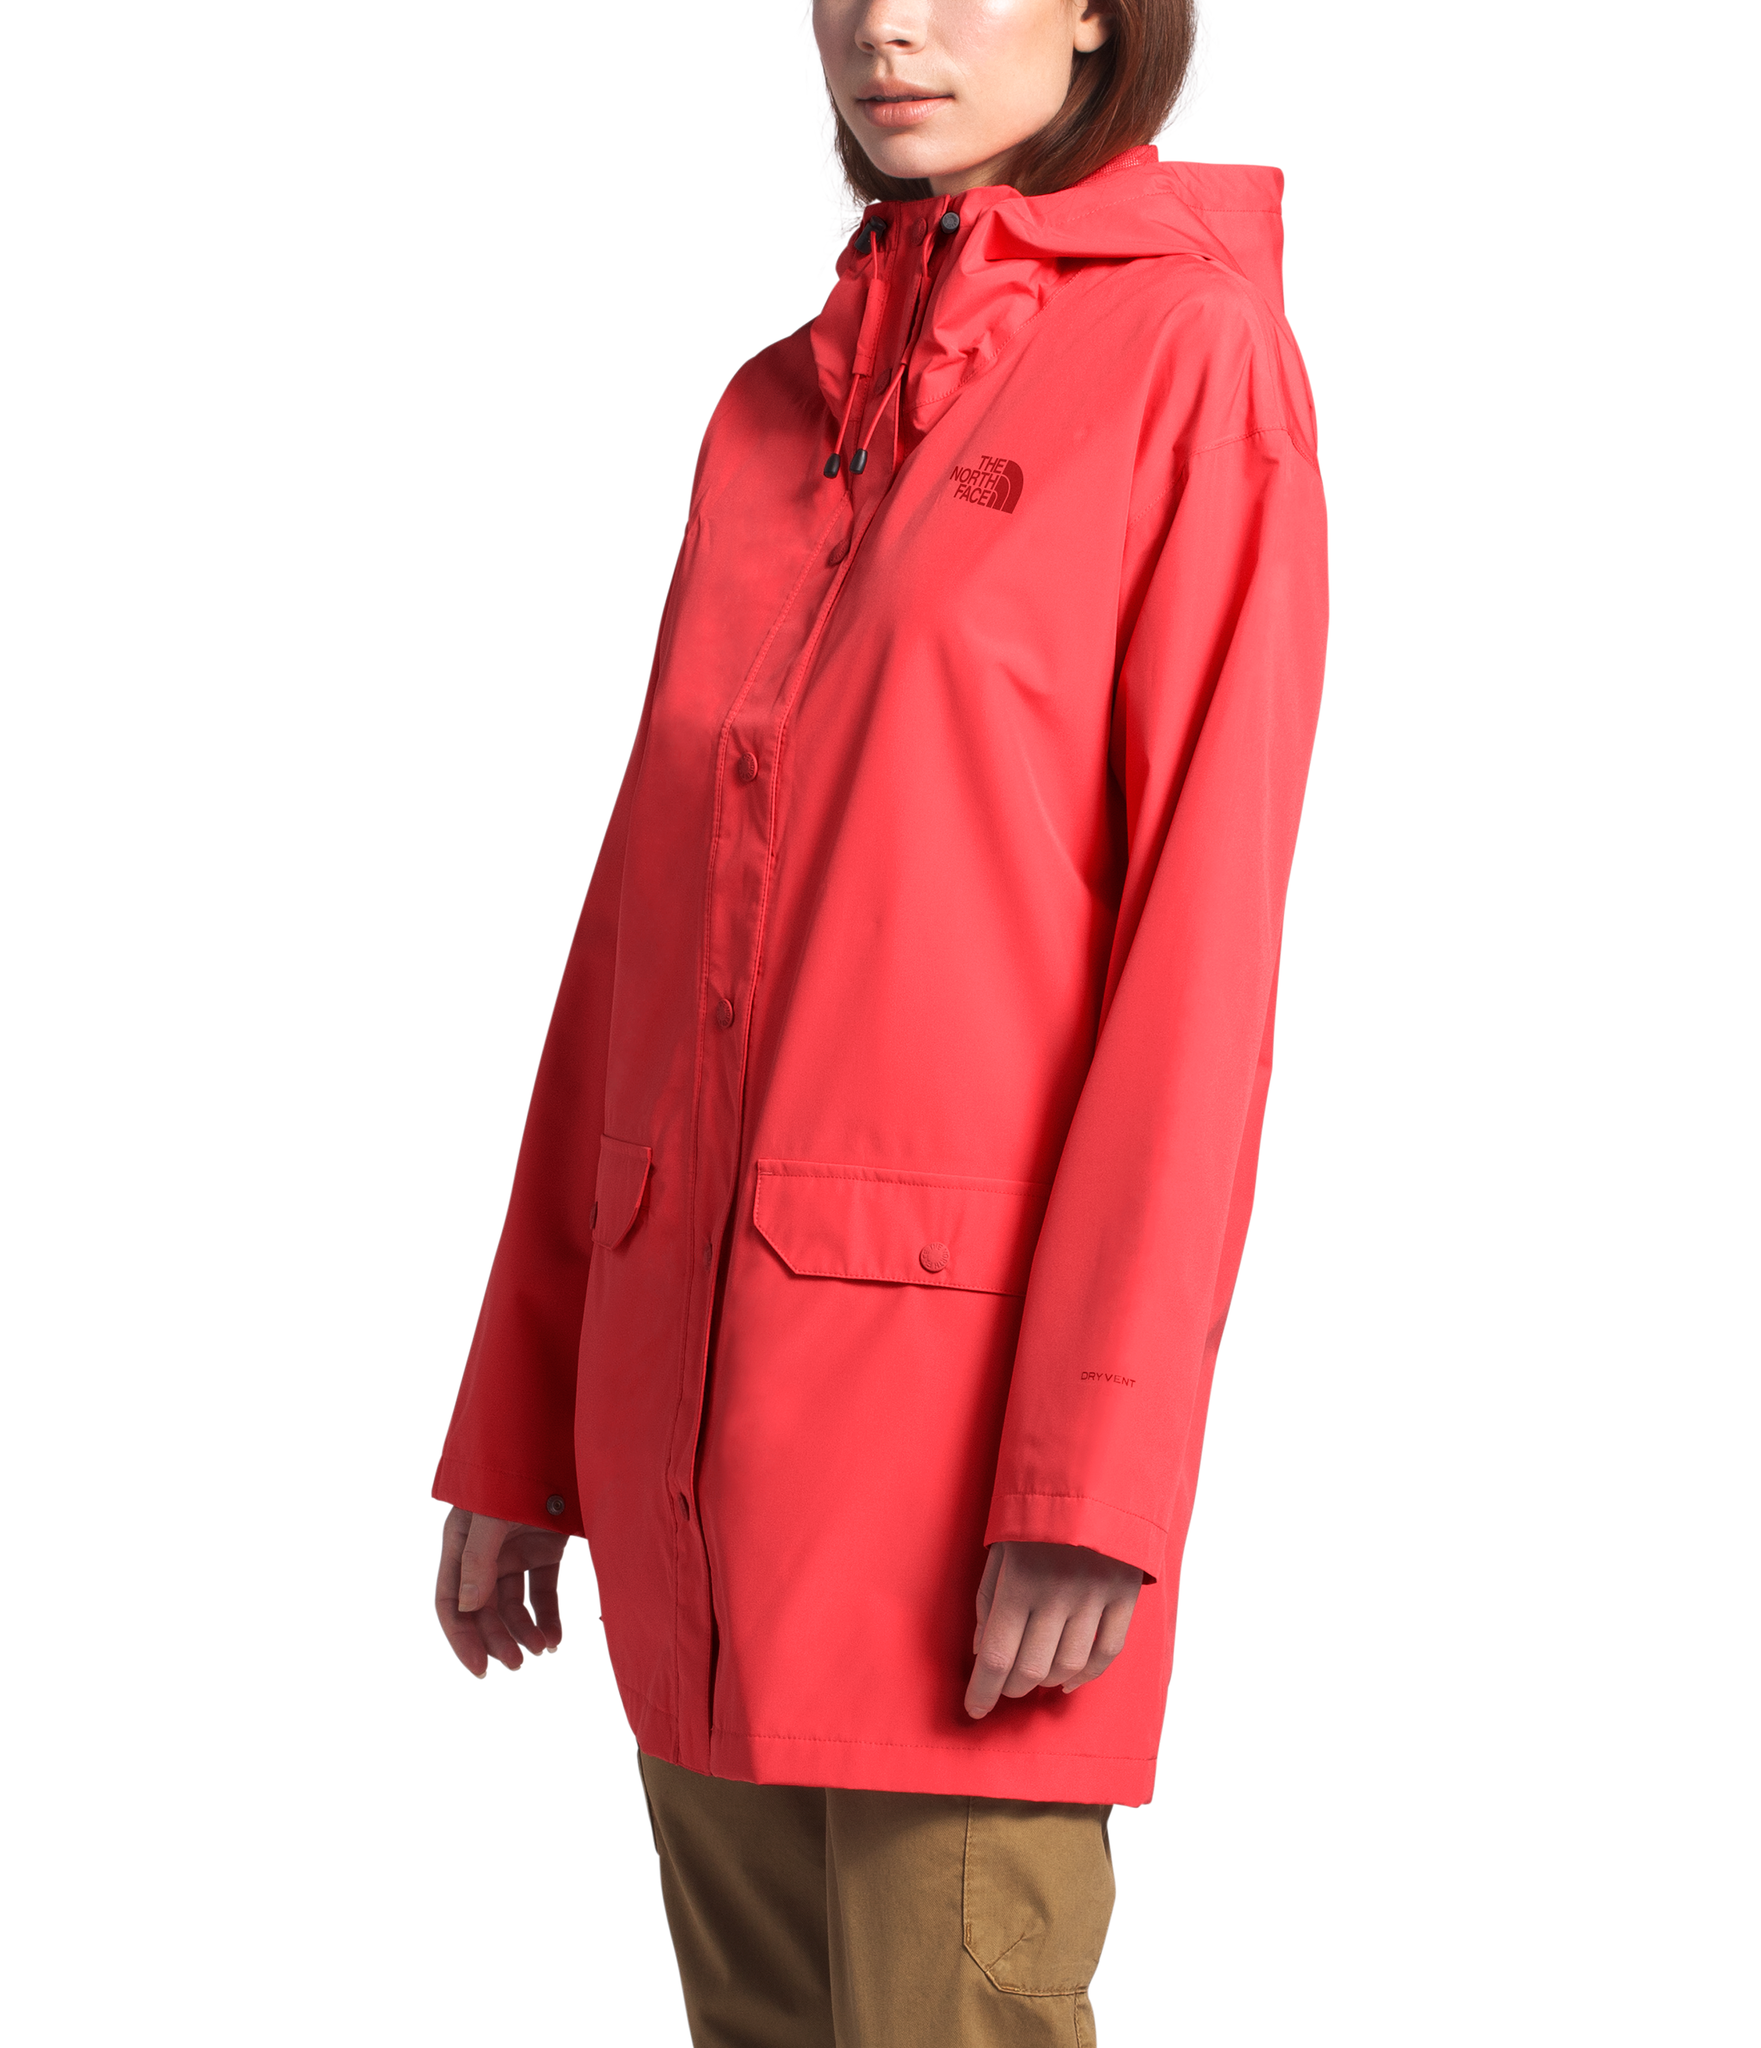 TNF Woodmont Women's Rain Jacket-5